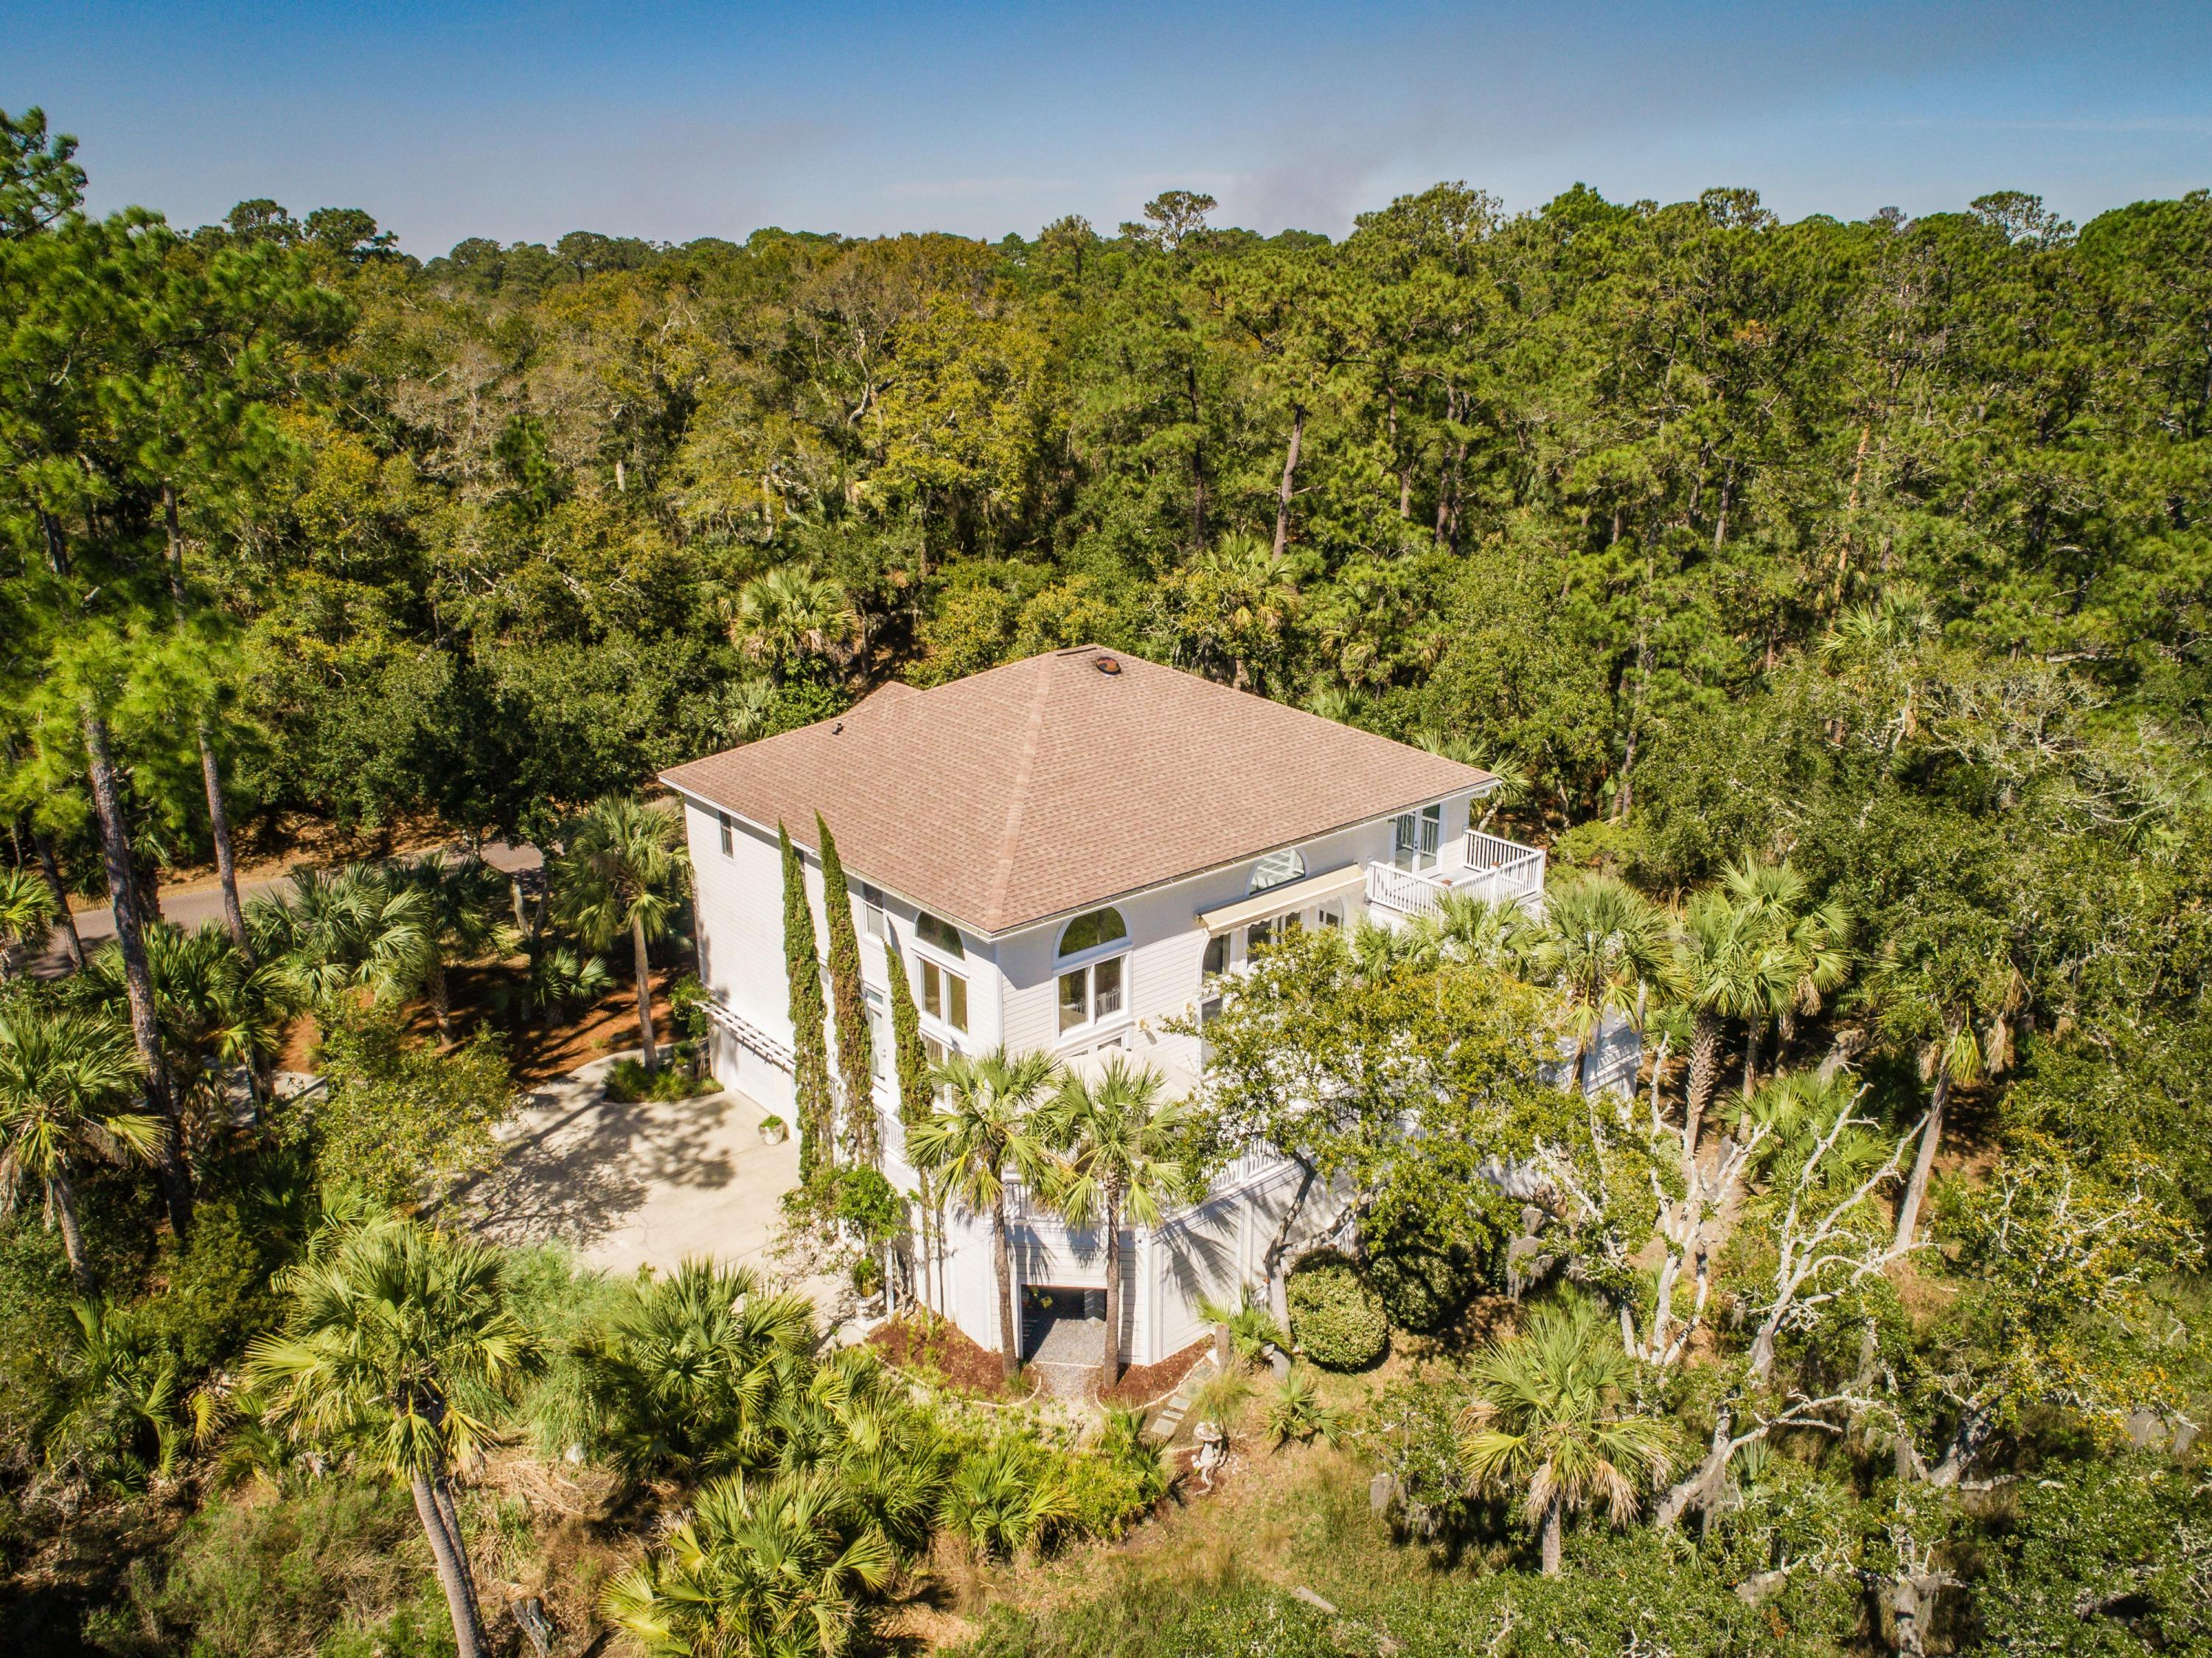 Seabrook Island Homes For Sale - 2957 Deer Point, Seabrook Island, SC - 38